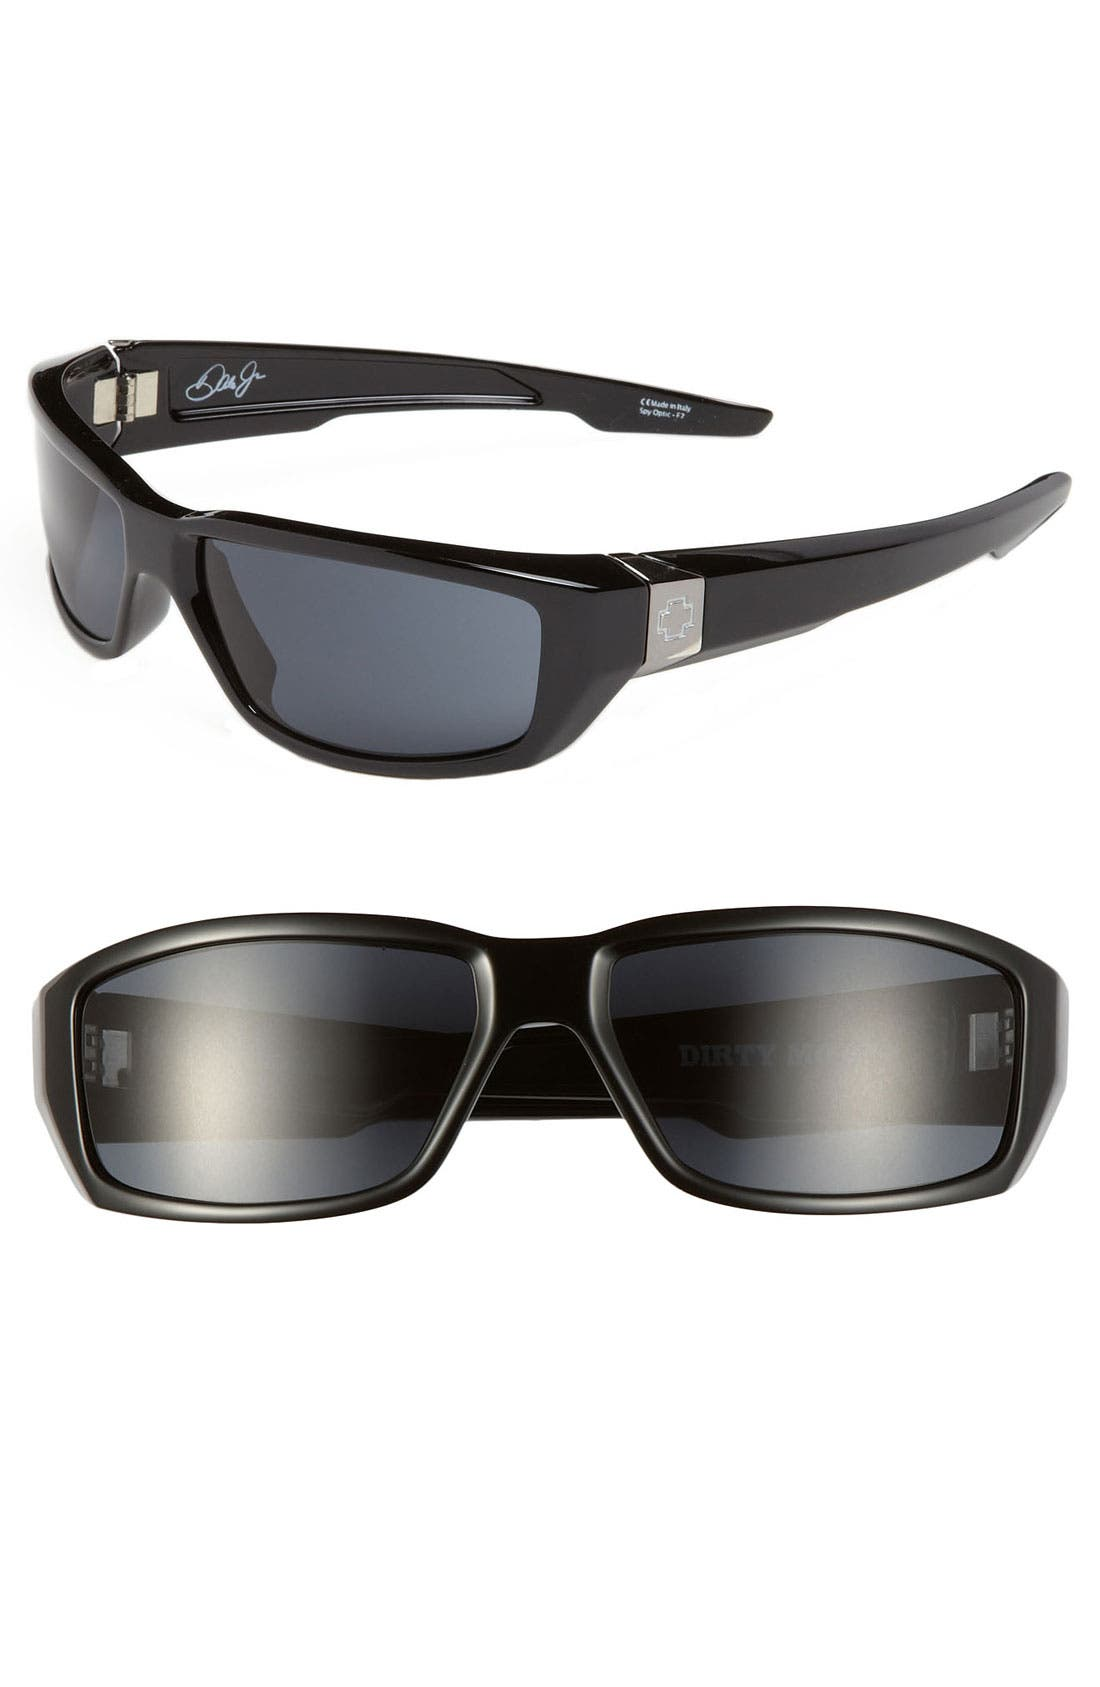 Main Image - SPY Optic 'Dale Earnhardt Jr. - Dirty Mo' 59mm Sunglasses